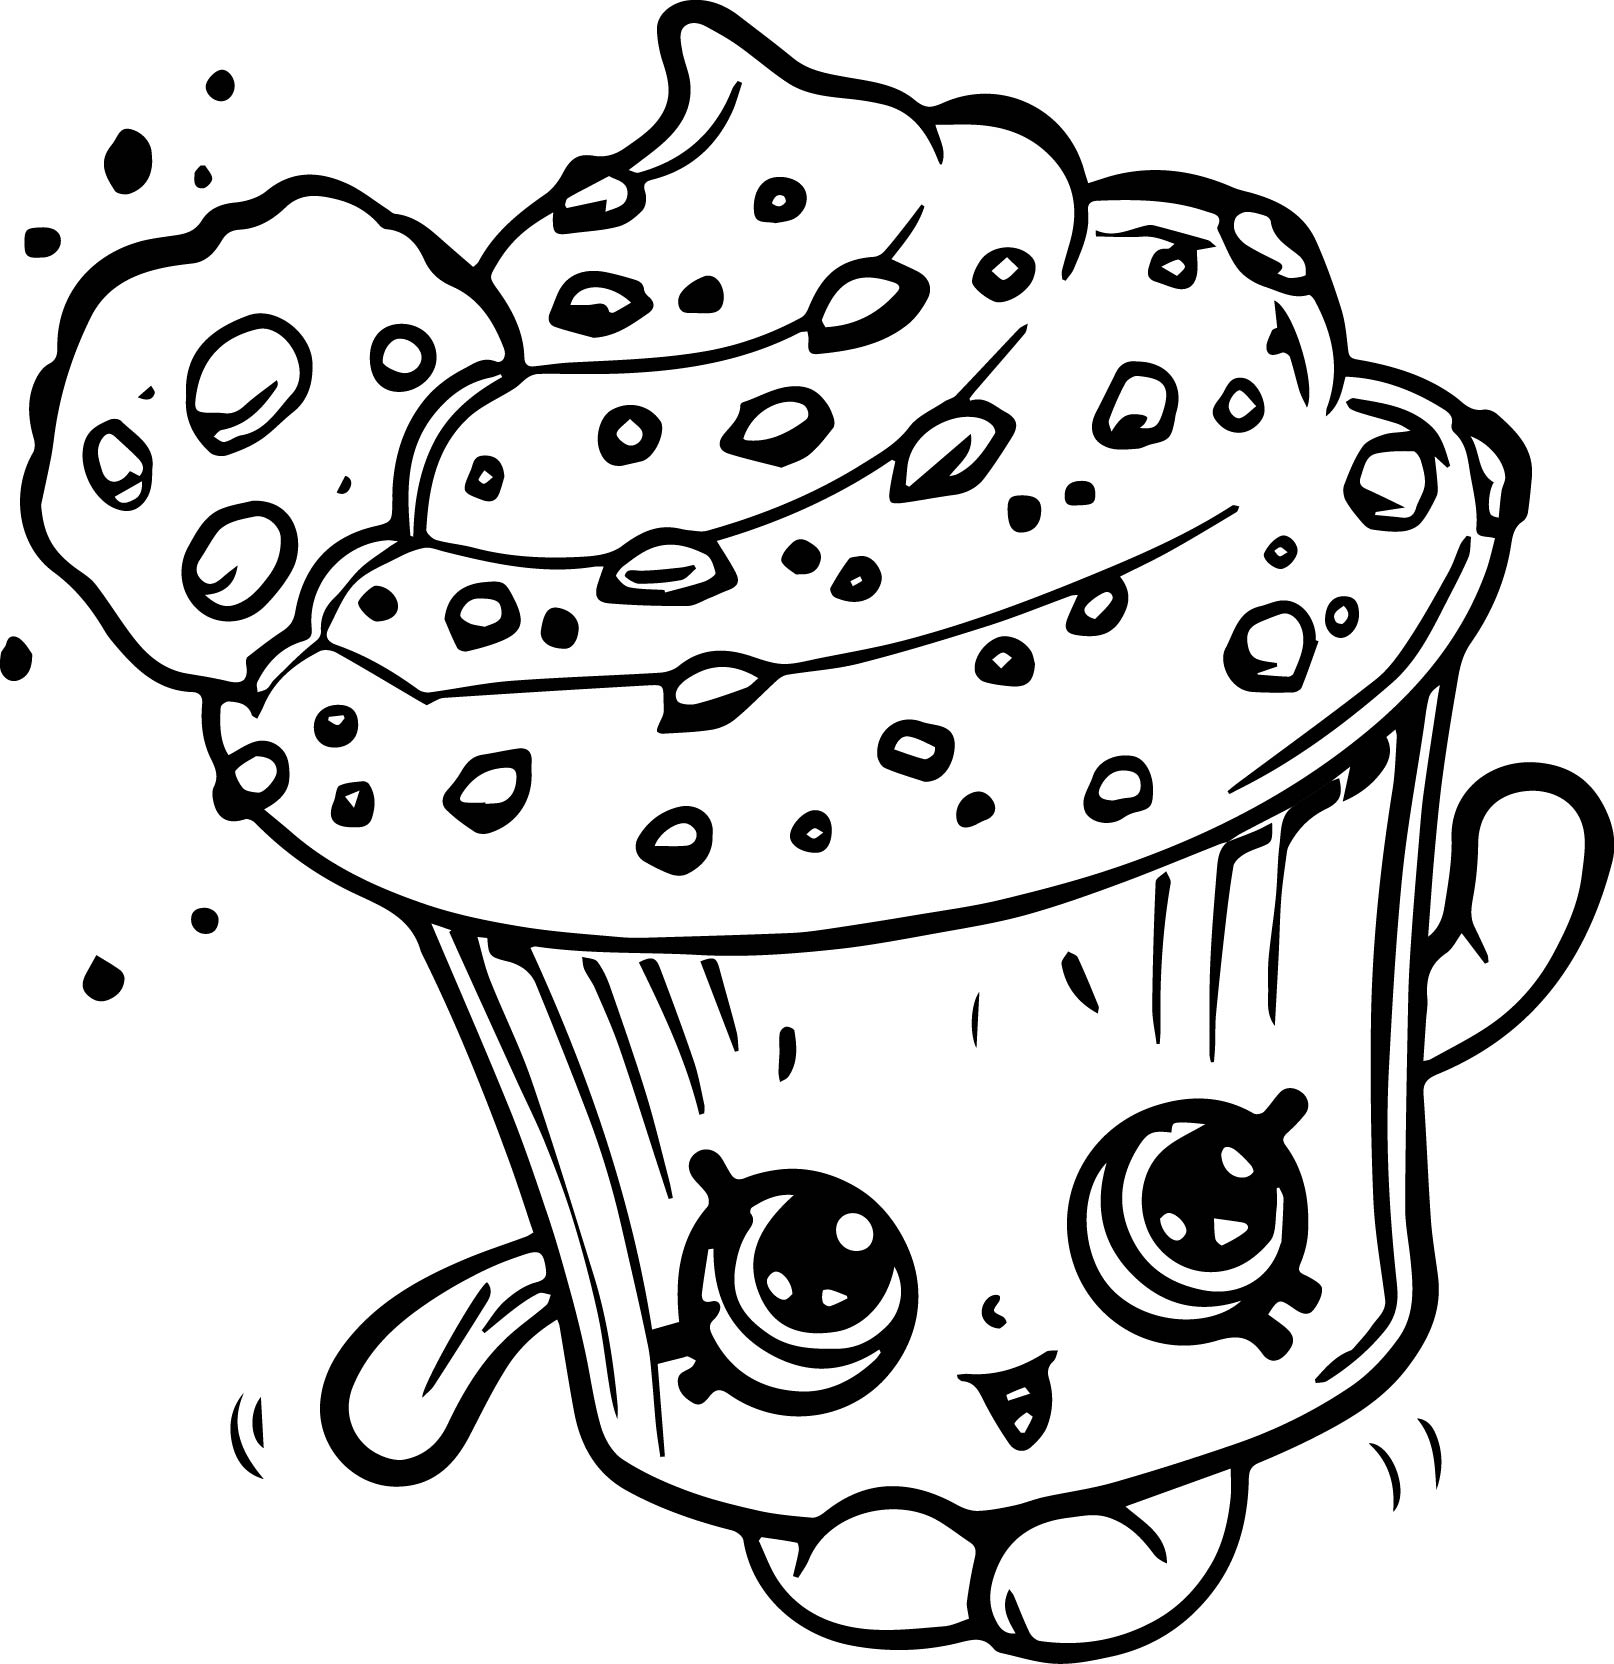 1614x1664 New Shopkins Coloring Pages Free Design Printable Coloring Sheet